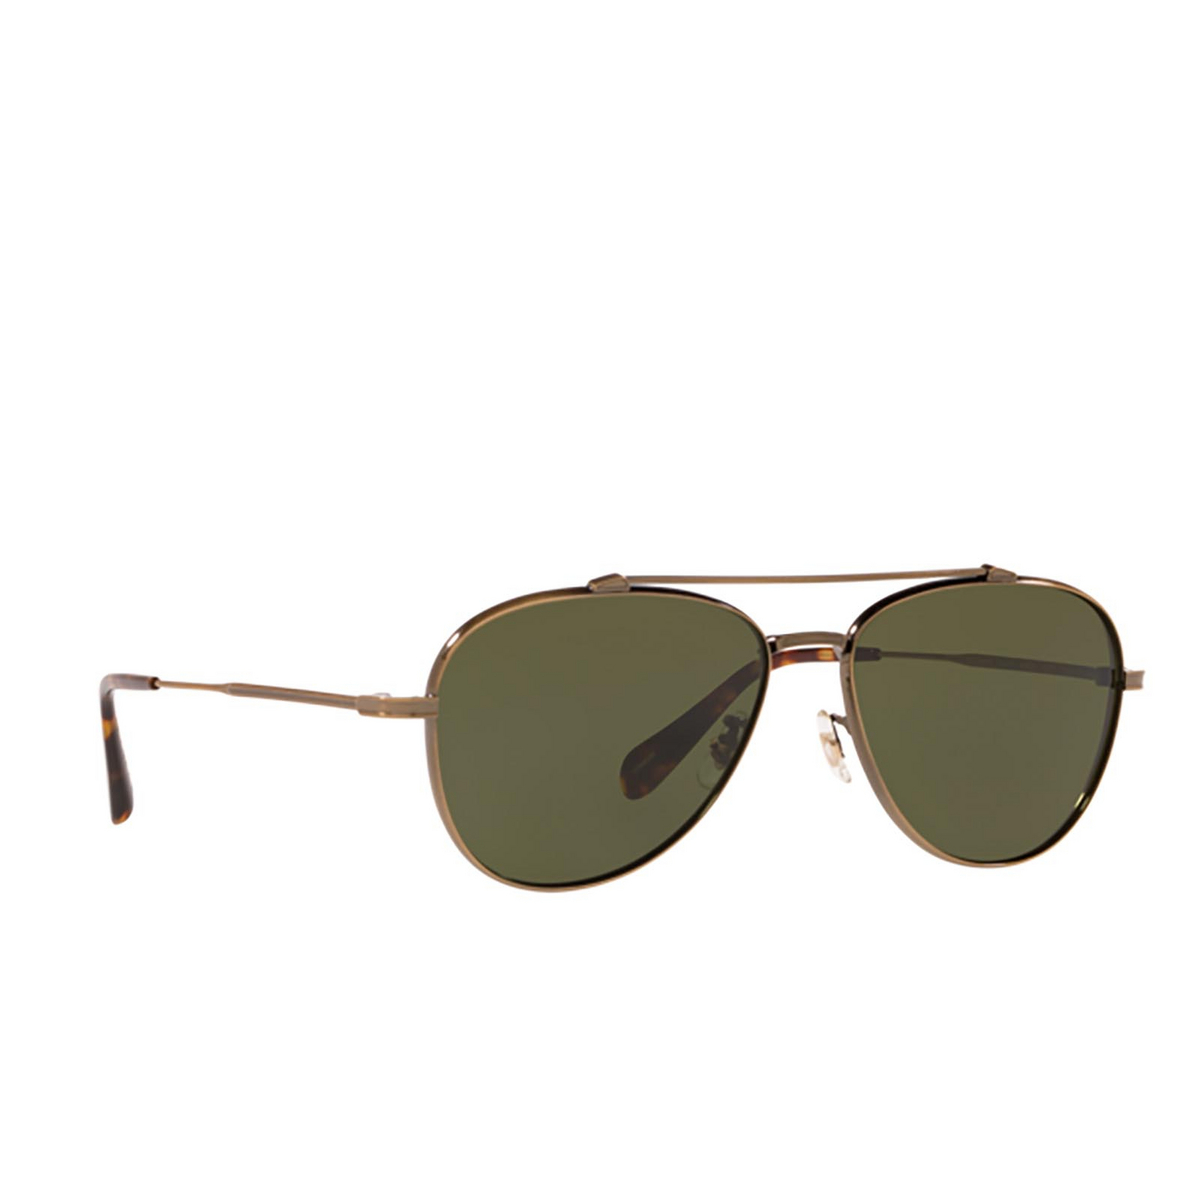 Oliver Peoples® Aviator Sunglasses: Rikson OV1266ST color Antique Gold 528471 - three-quarters view.